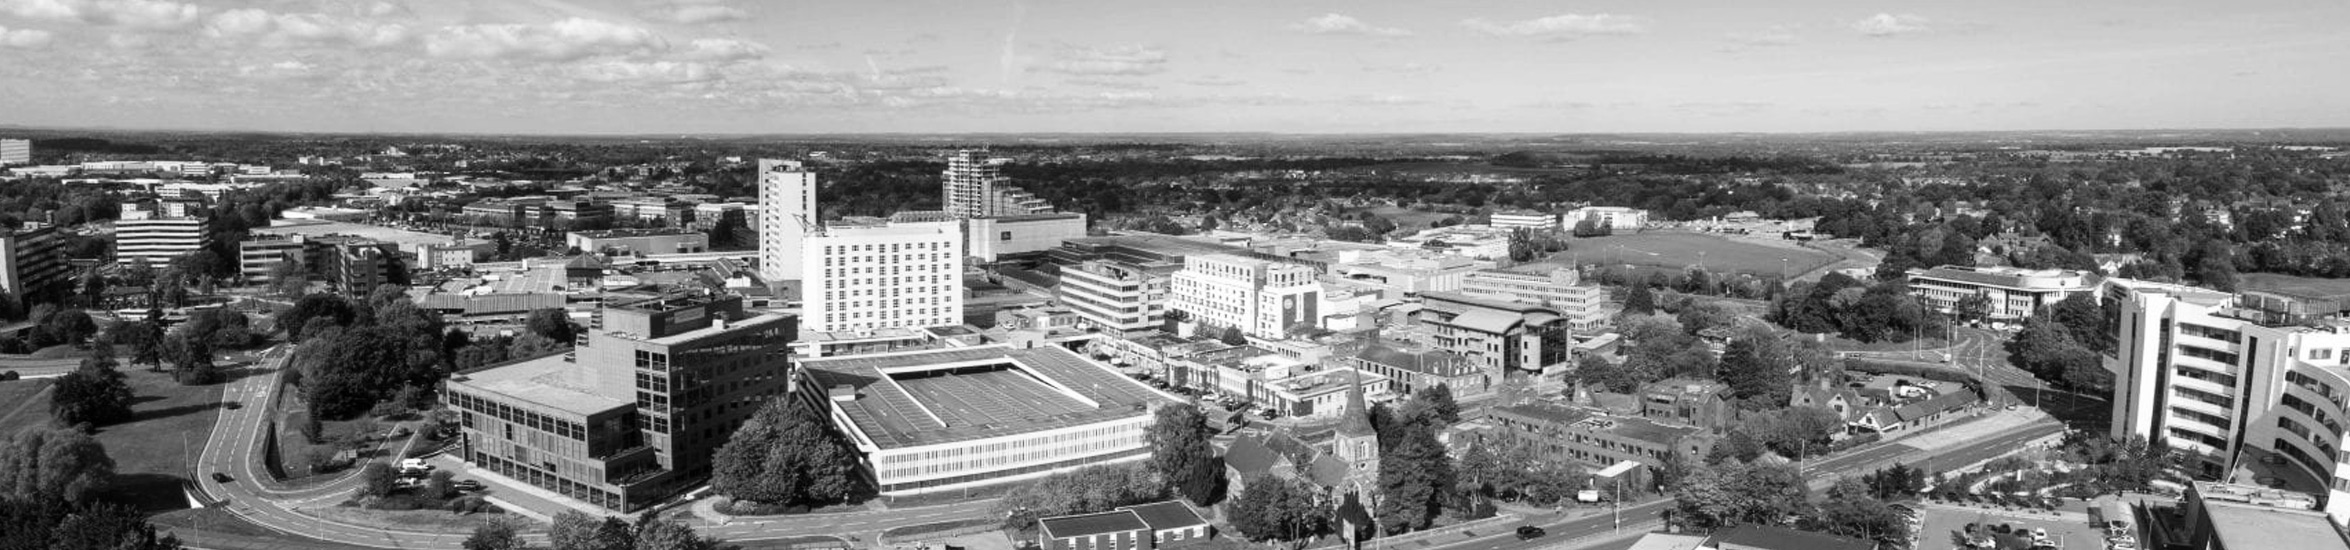 Why invest in property in Bracknell